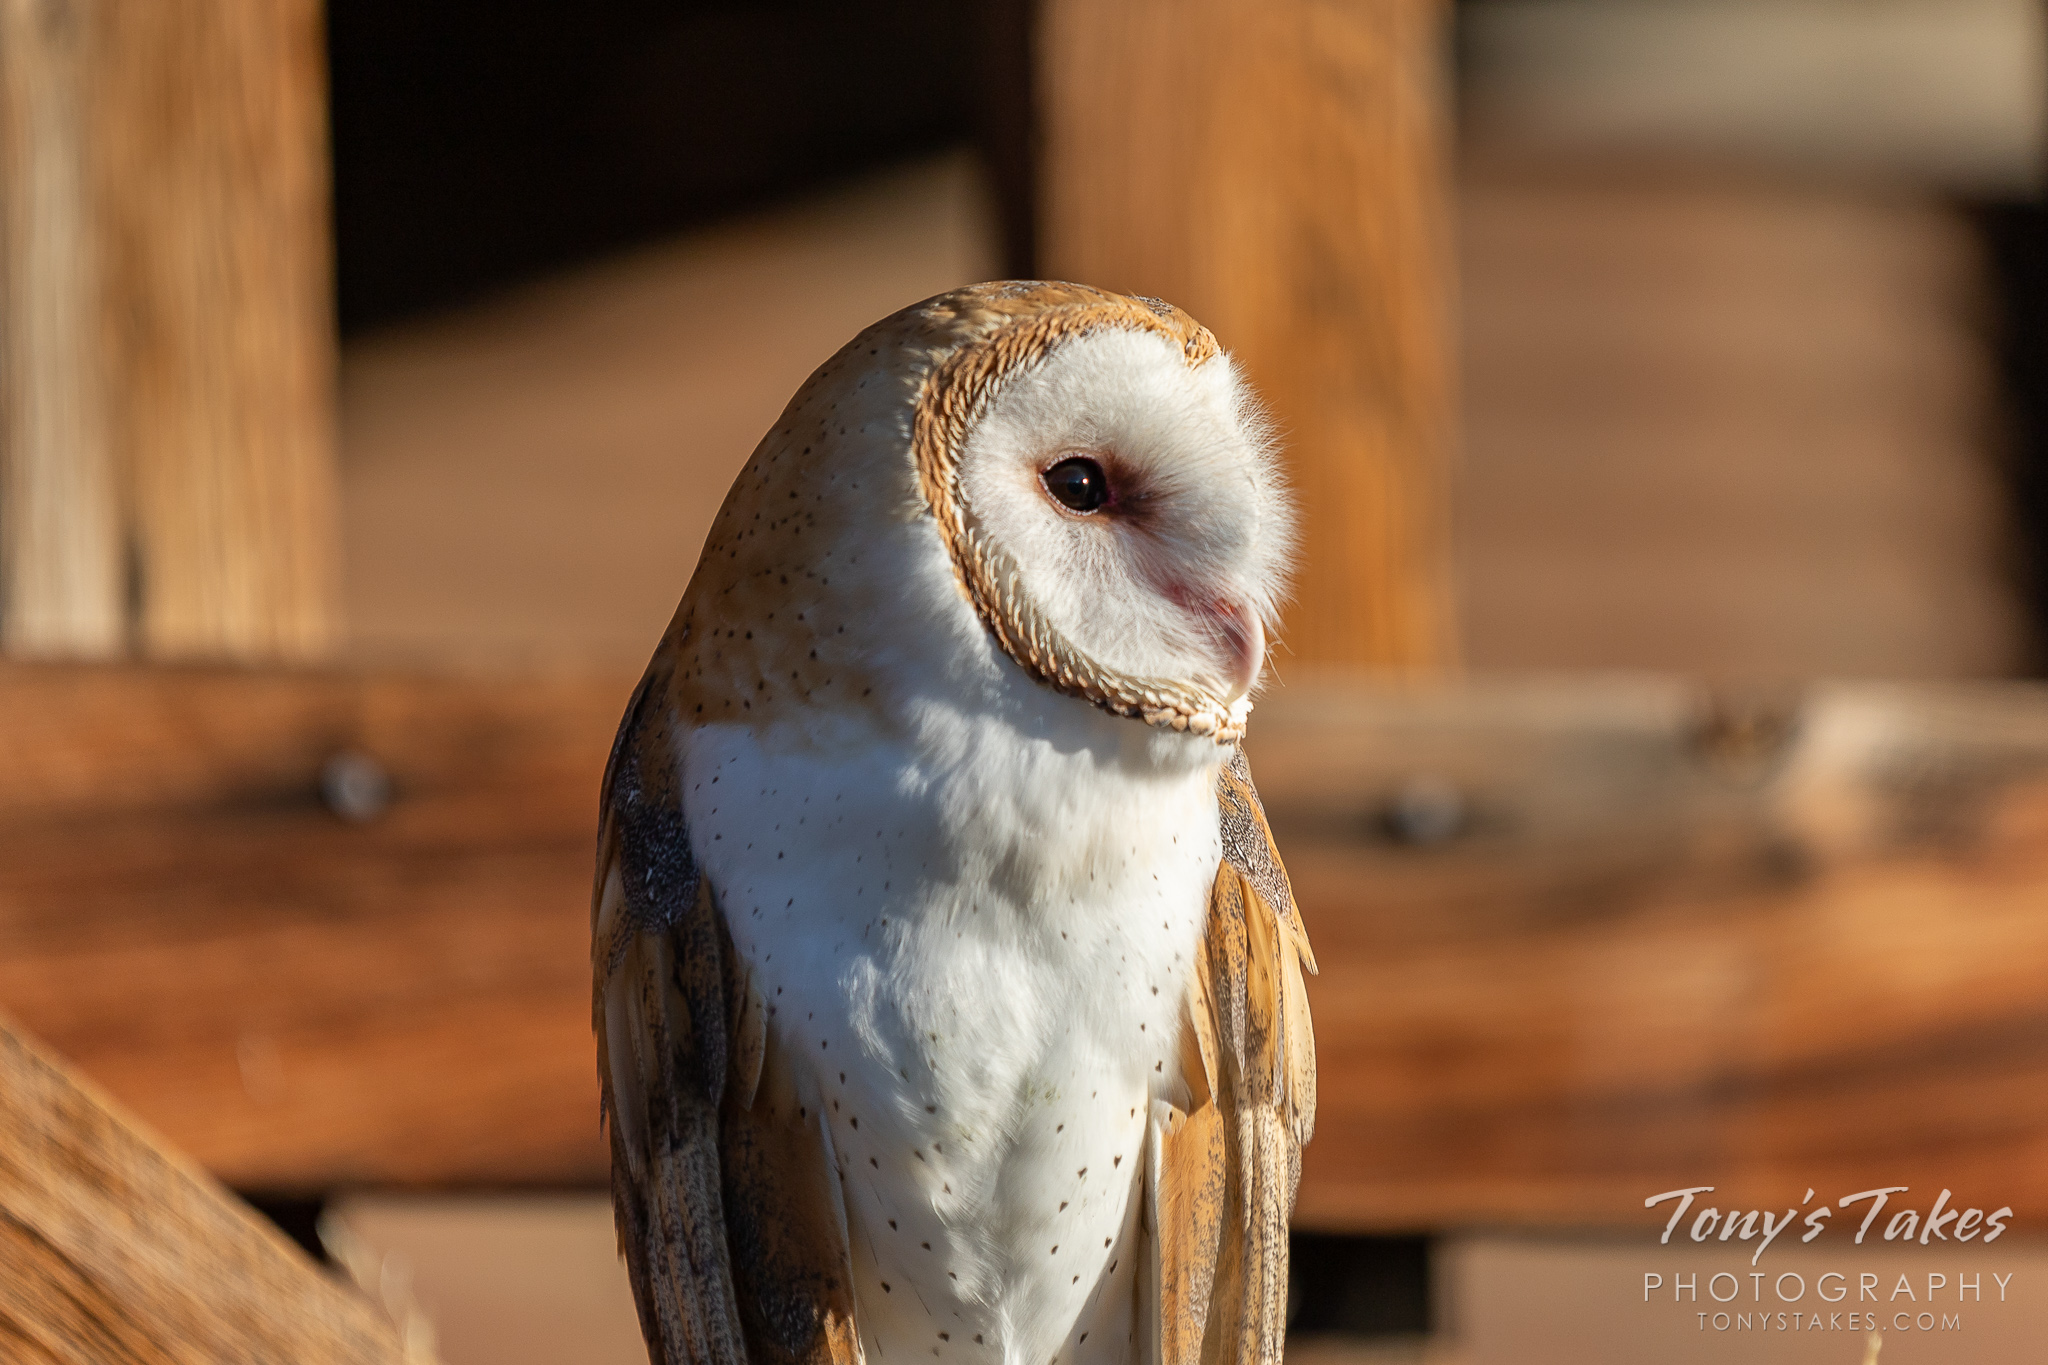 Profile of a barn owl